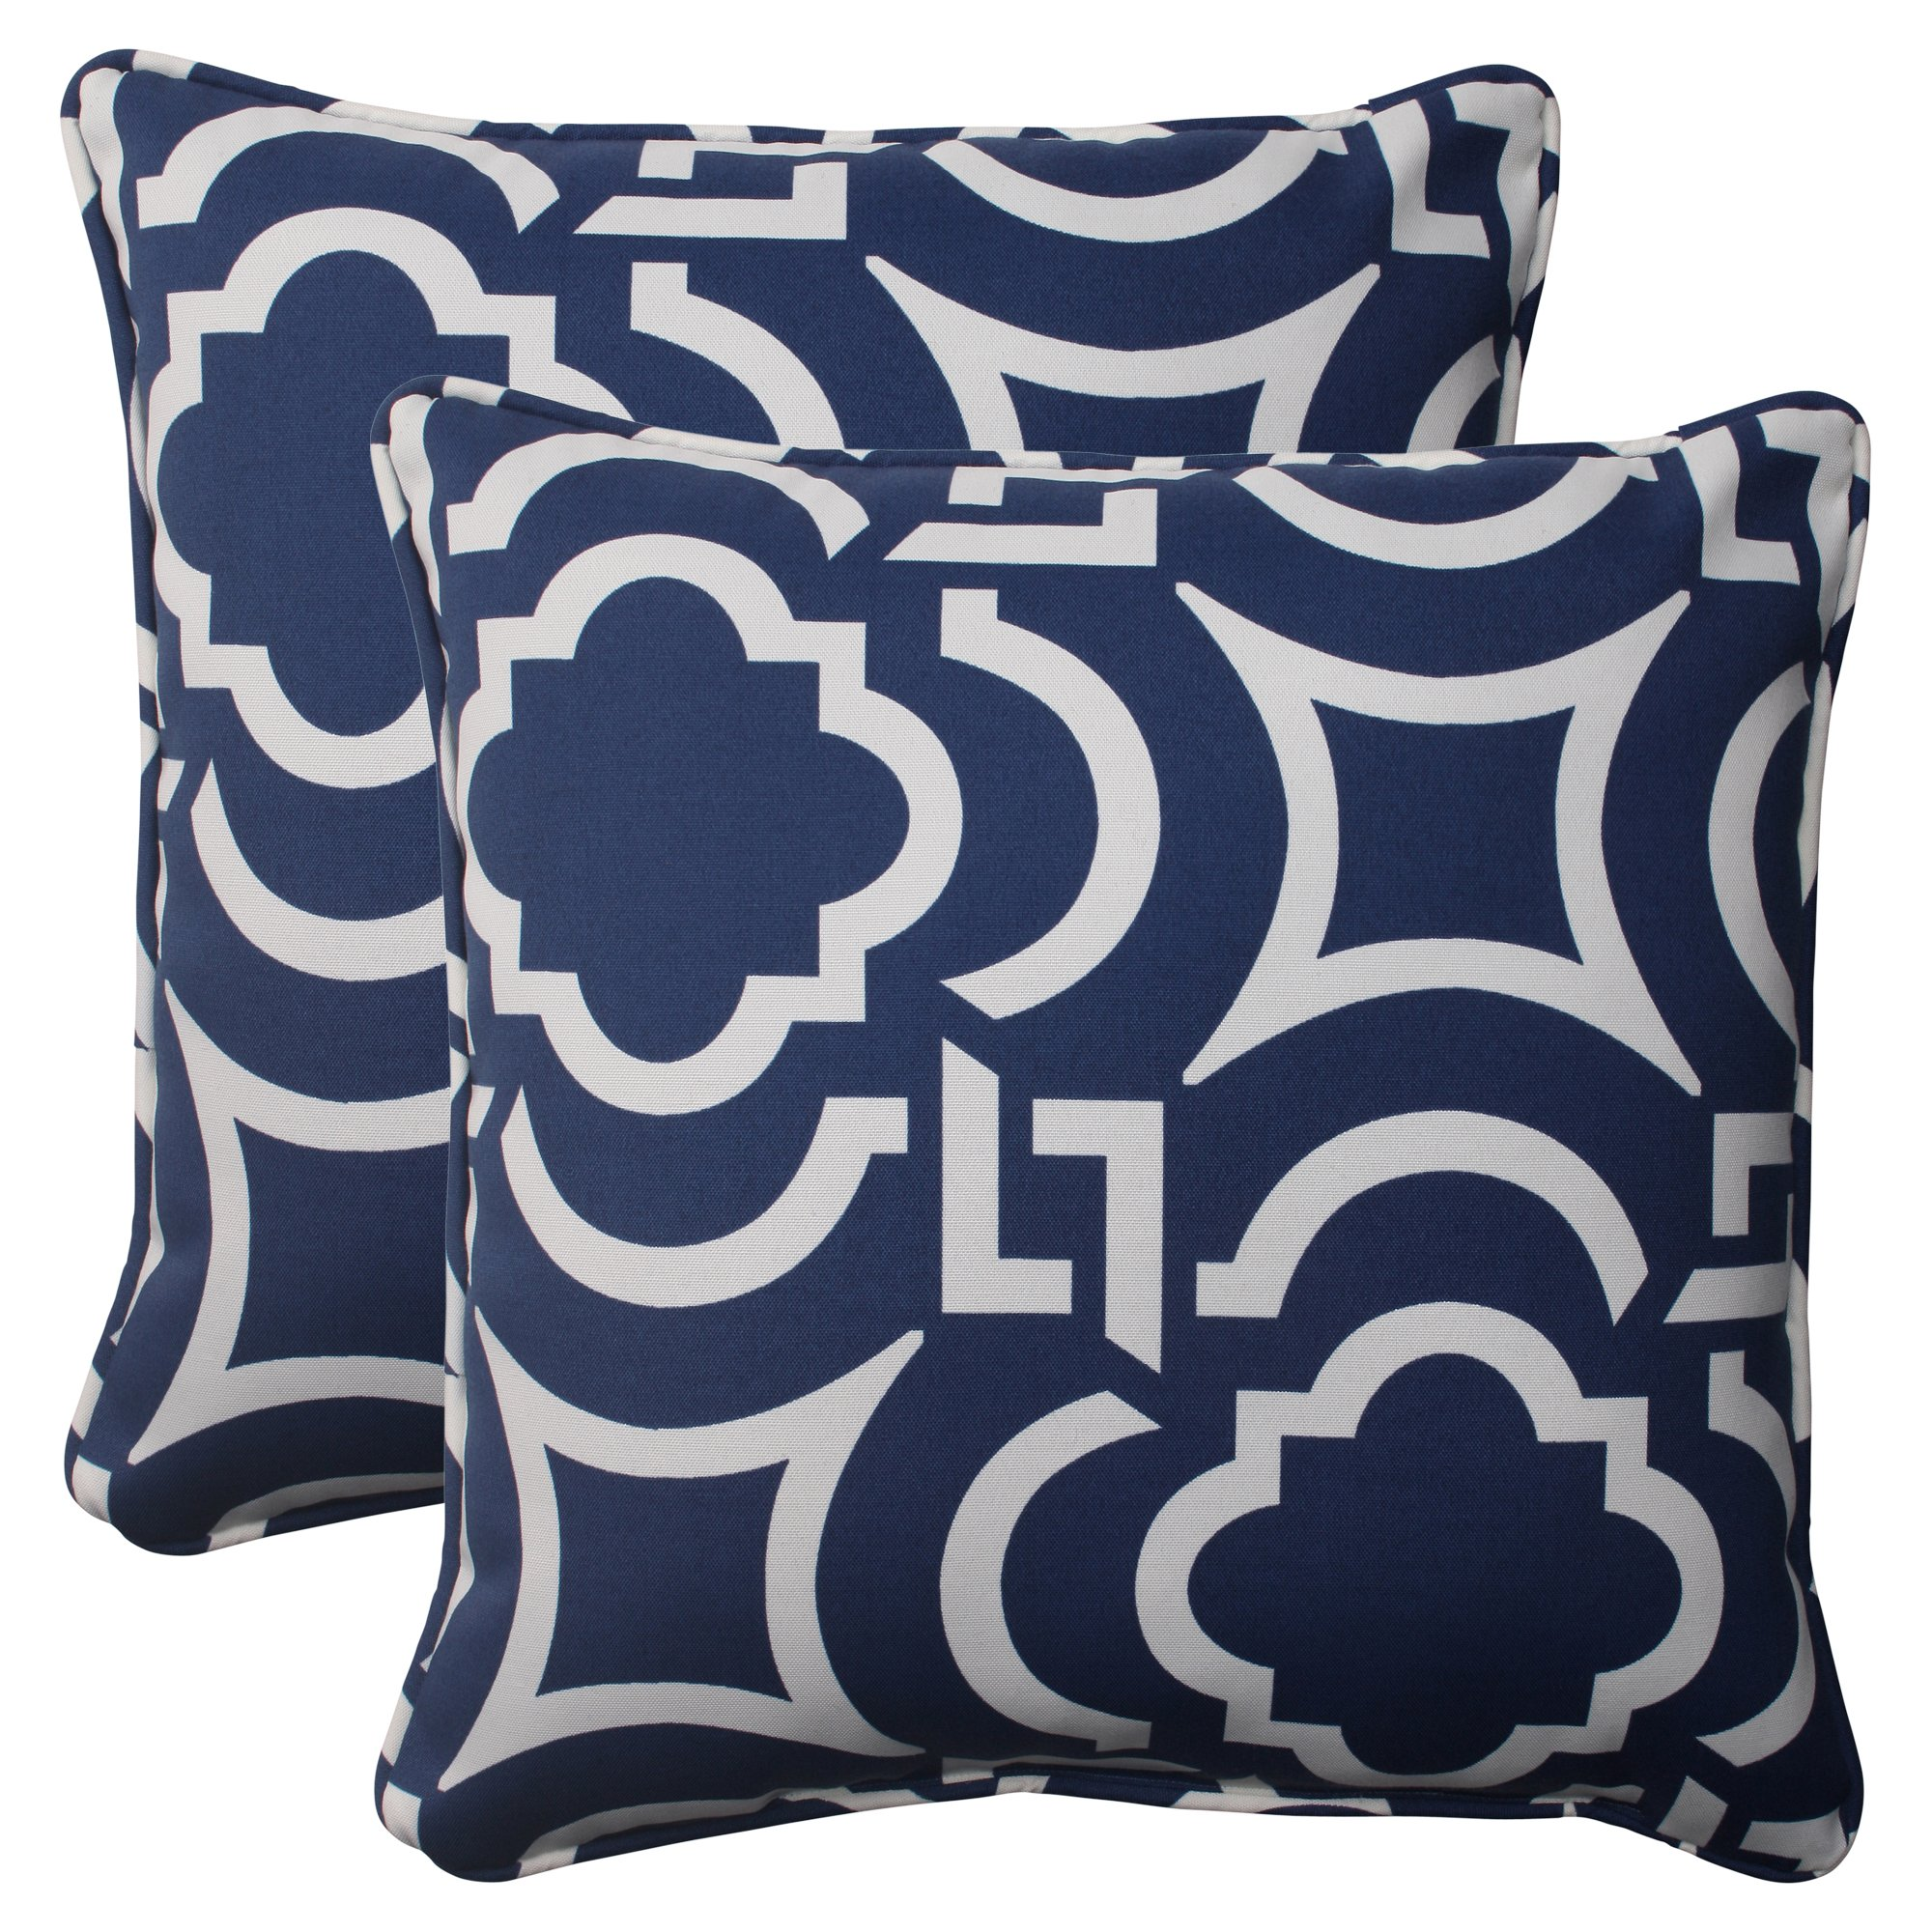 Pillow Perfect Indoor/Outdoor Carmody Corded Throw Pillow, 18.5-Inch, Navy, Set of 2 by Pillow Perfect